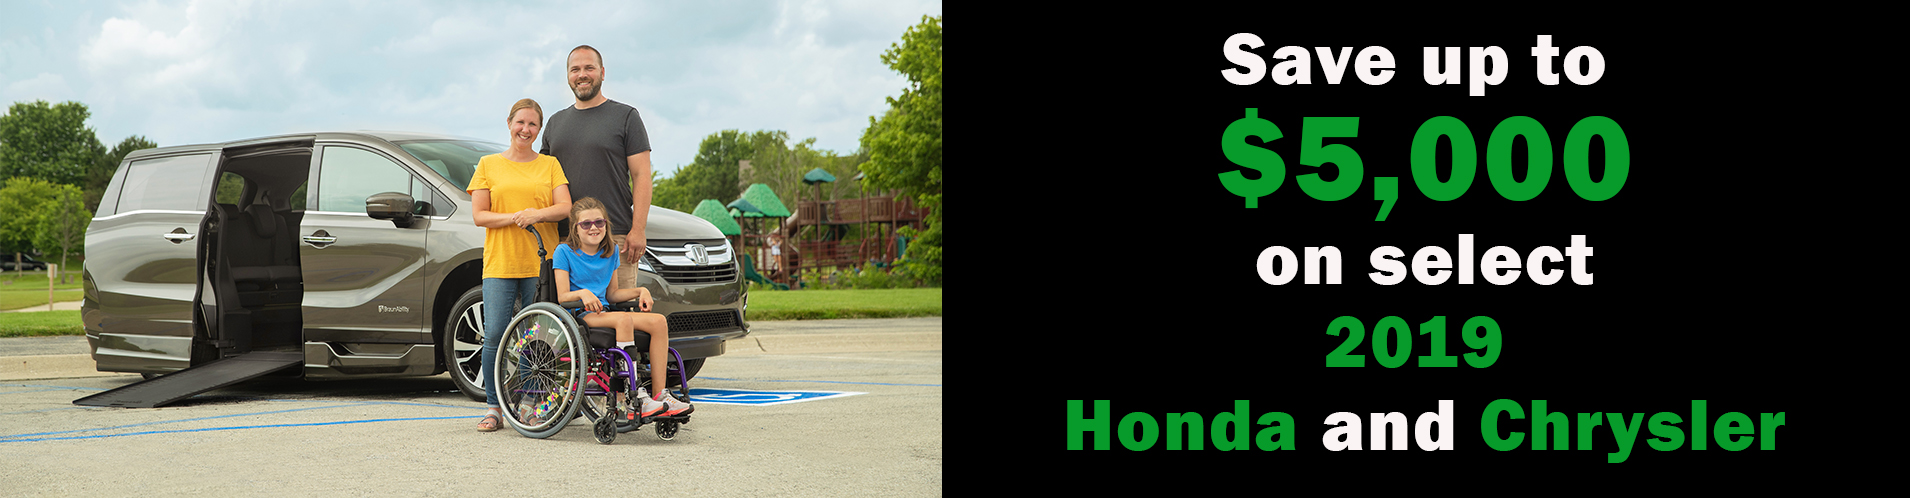 Buy a Honda Odyssey or Chrysler Pacifica wheelchair van from United Access today